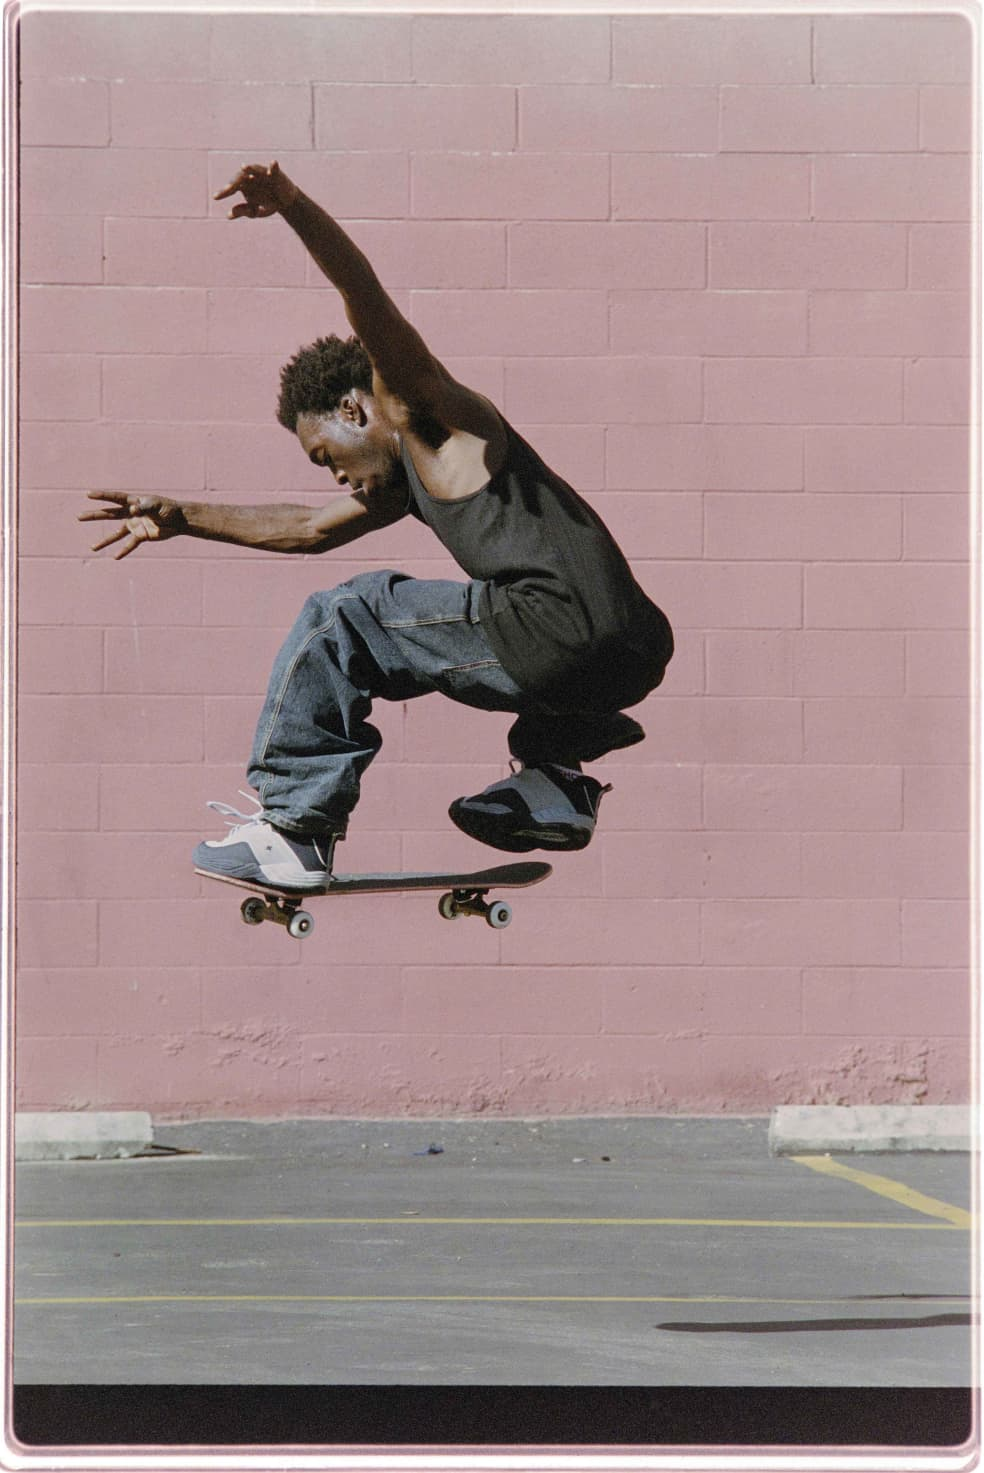 Stevie Williams, Los Angeles, 2000   Photograph by Mike Blabac 2